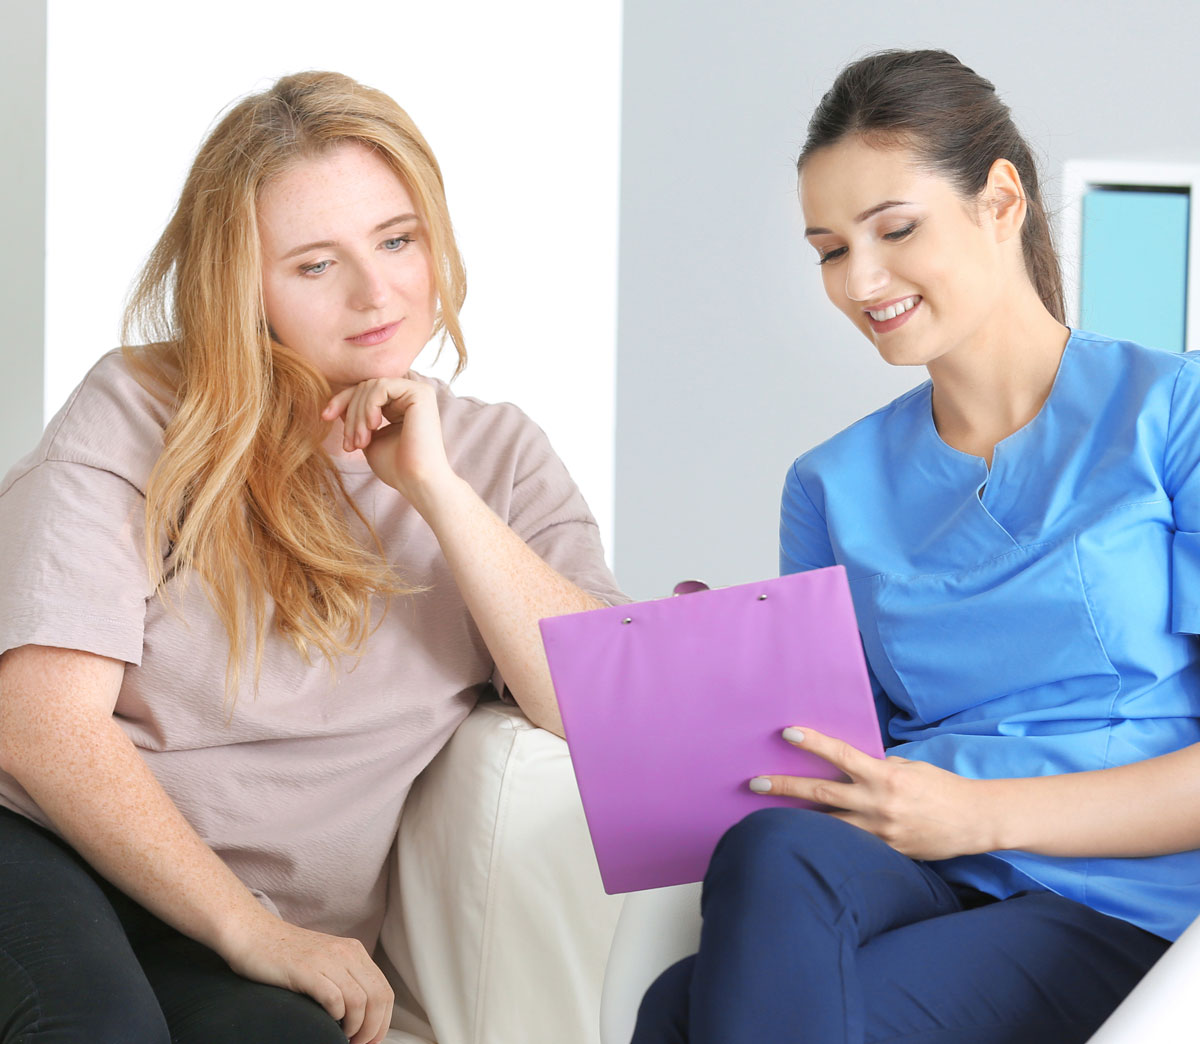 Nurse consulting with caucasian young woman